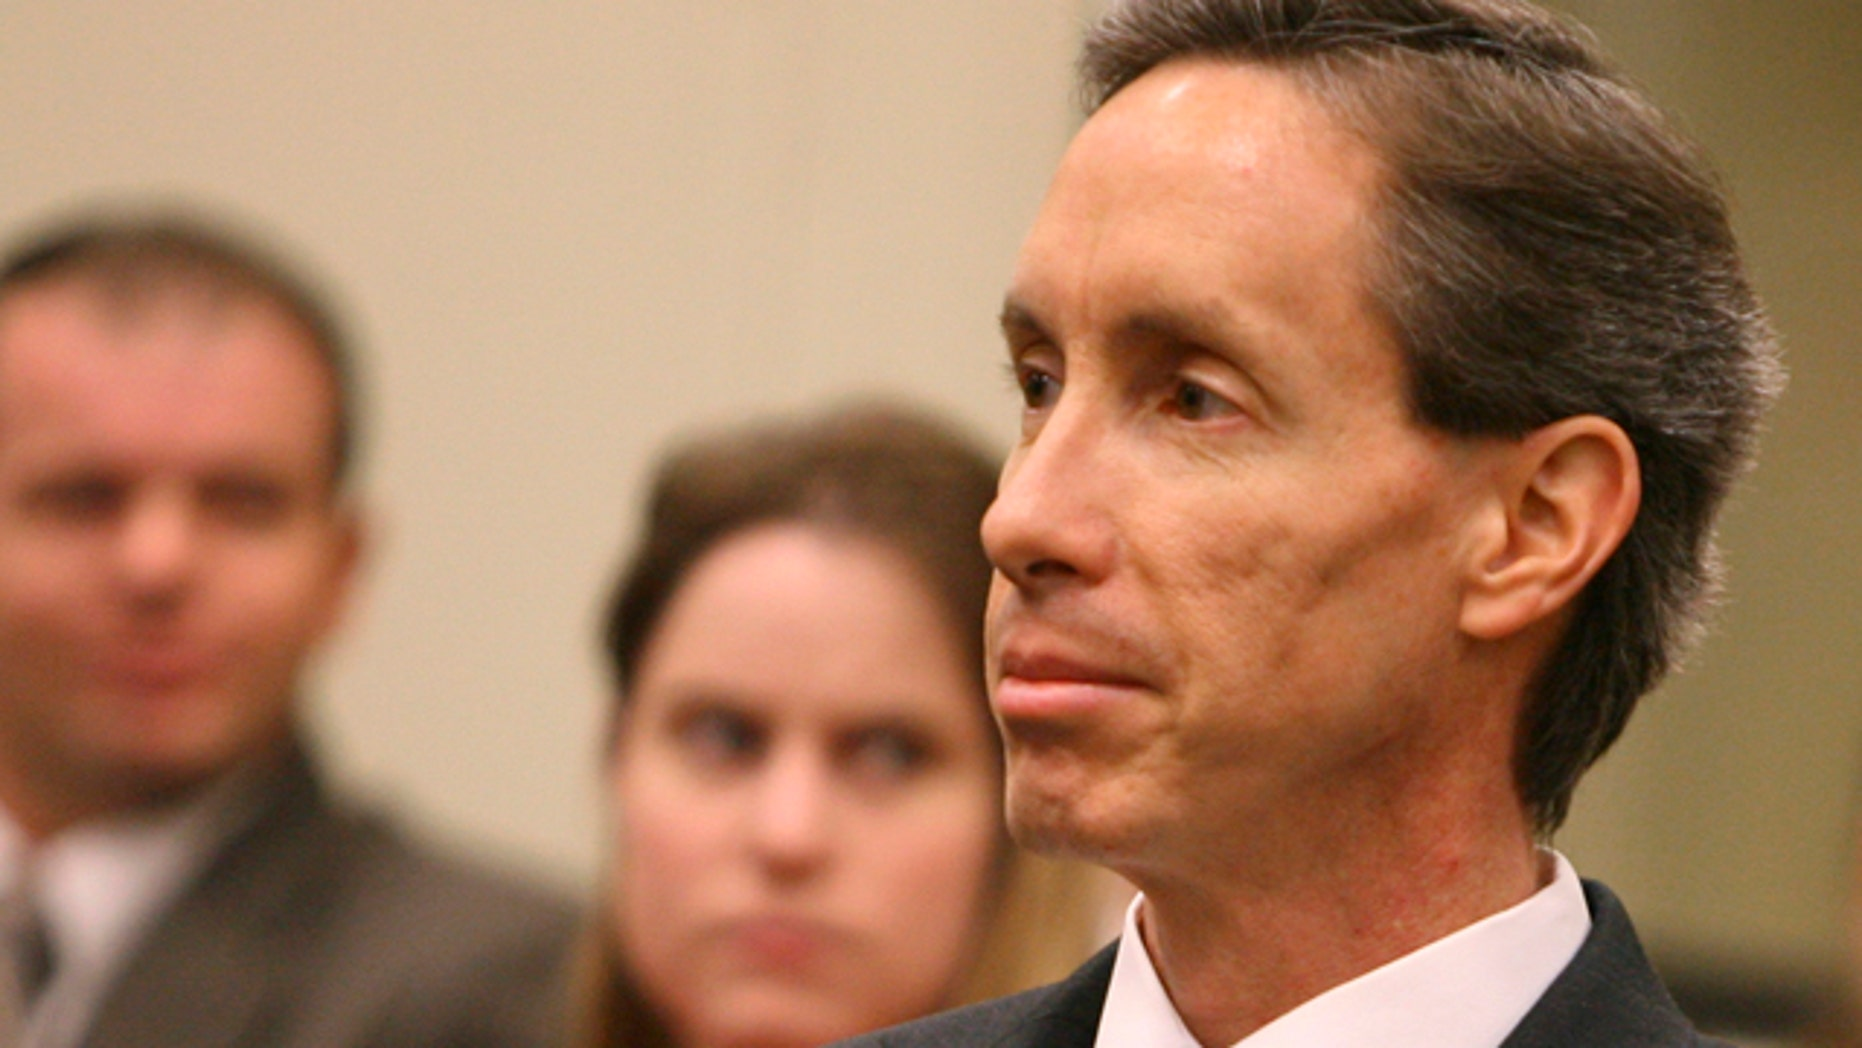 Warren Jeffs, the self-proclaimed prophet of a polygamist sect